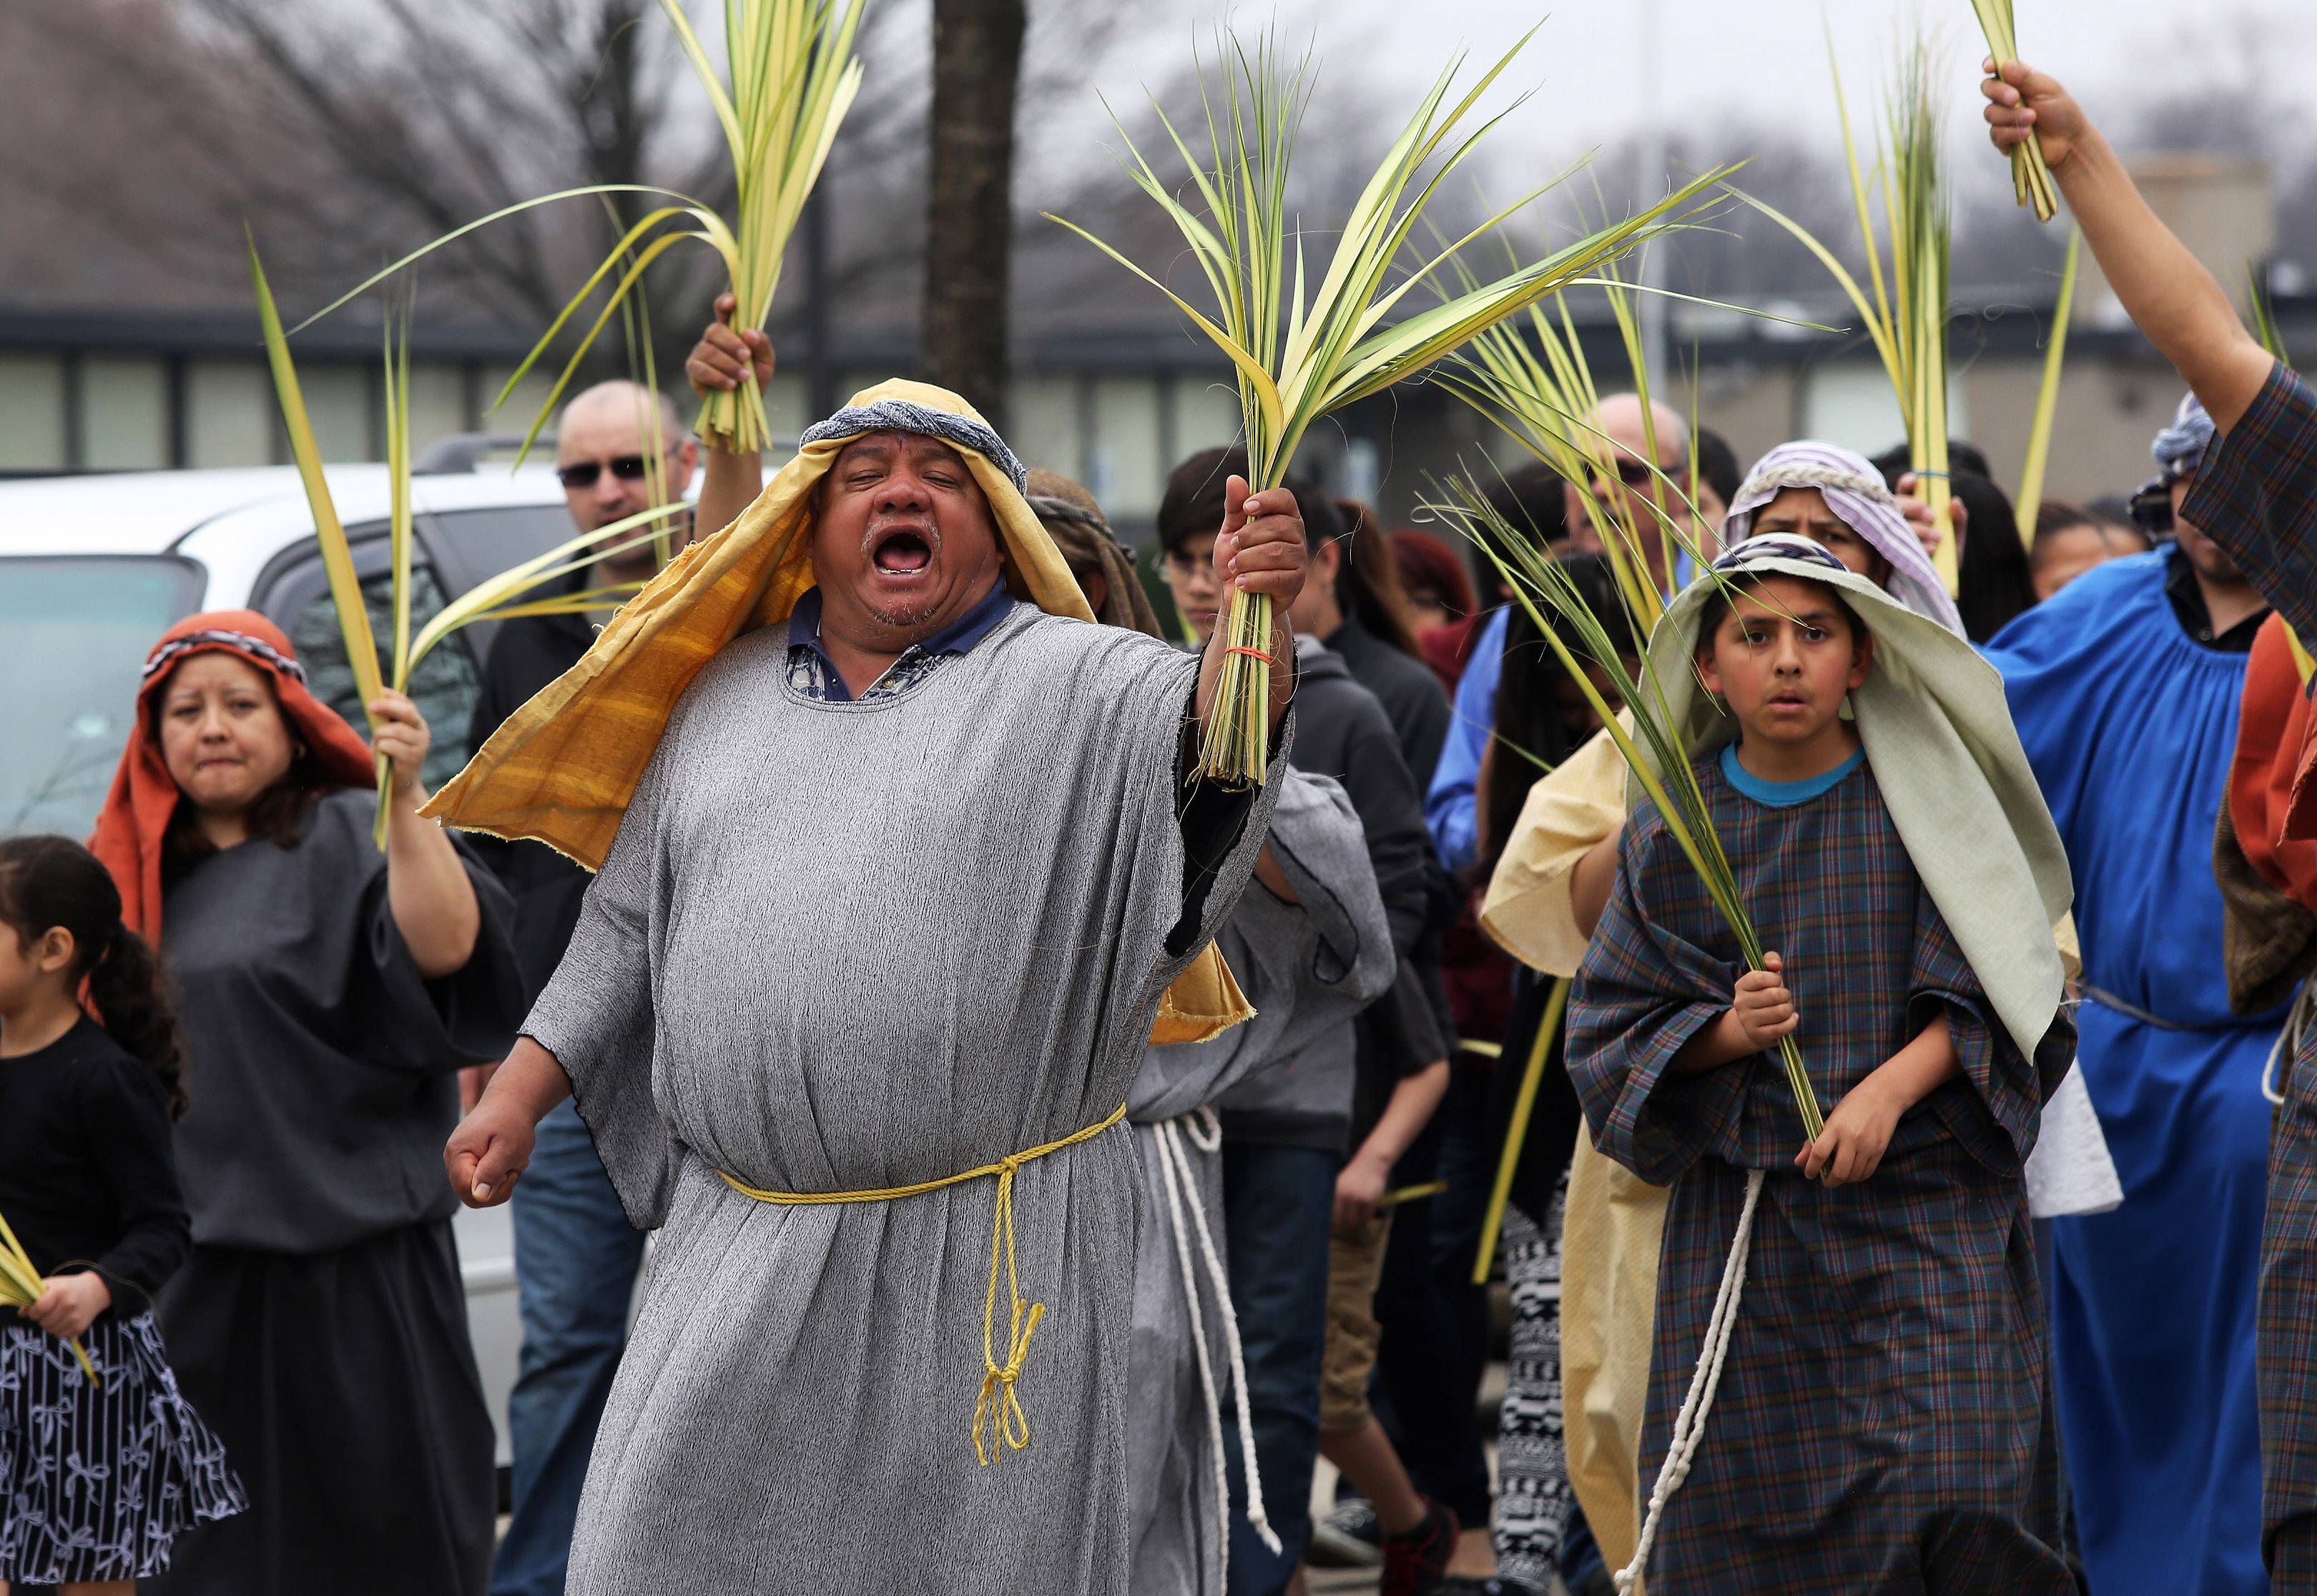 Antonio Vargas, of Palatine, chants as he walks with parishioners in a Palm Sunday procession from St. Thomas Villanova in Palatine to Mission San Juan Diego in Arlington Heights.